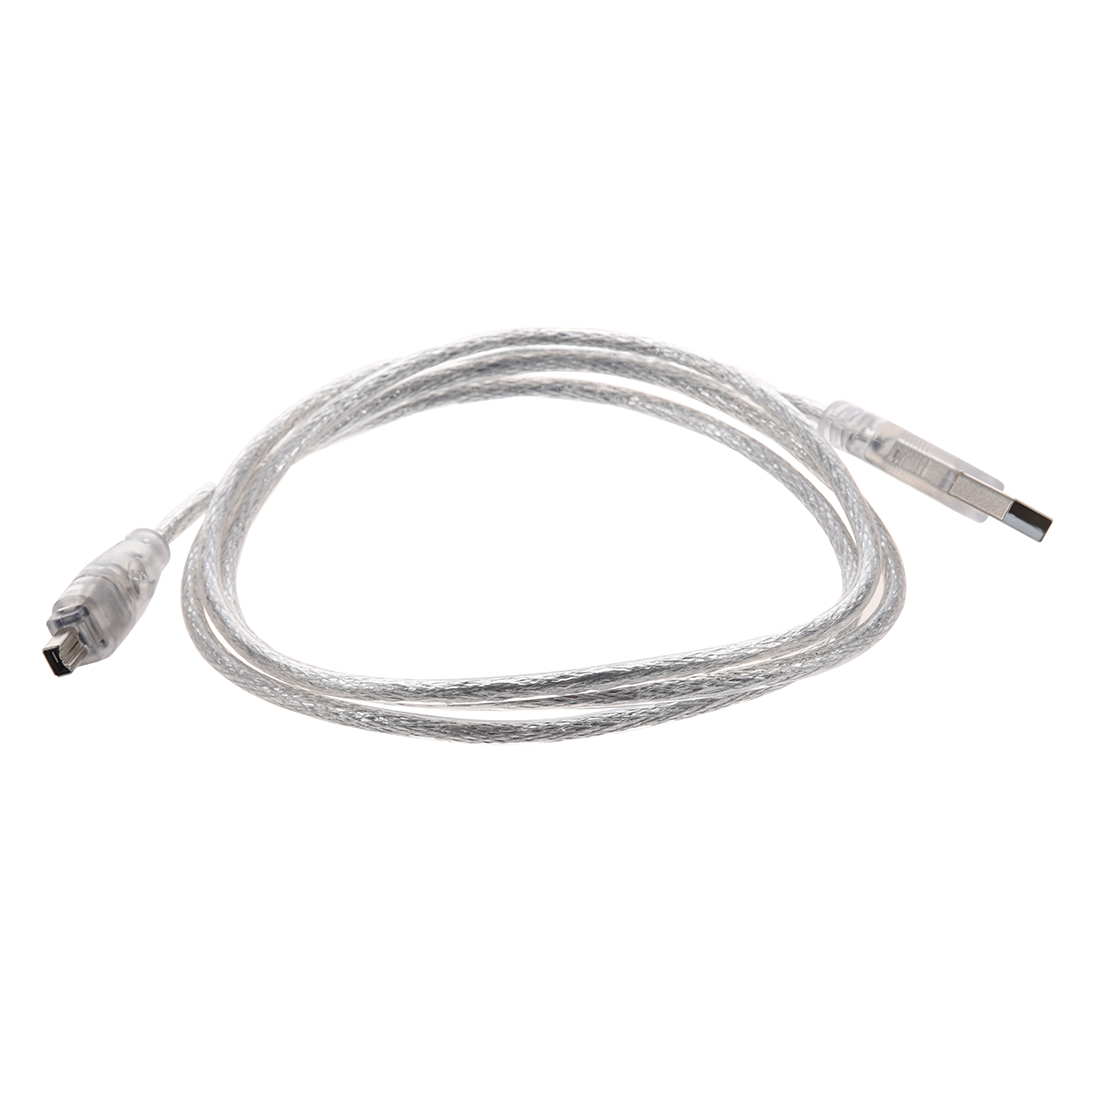 4 Pin Cable Connector